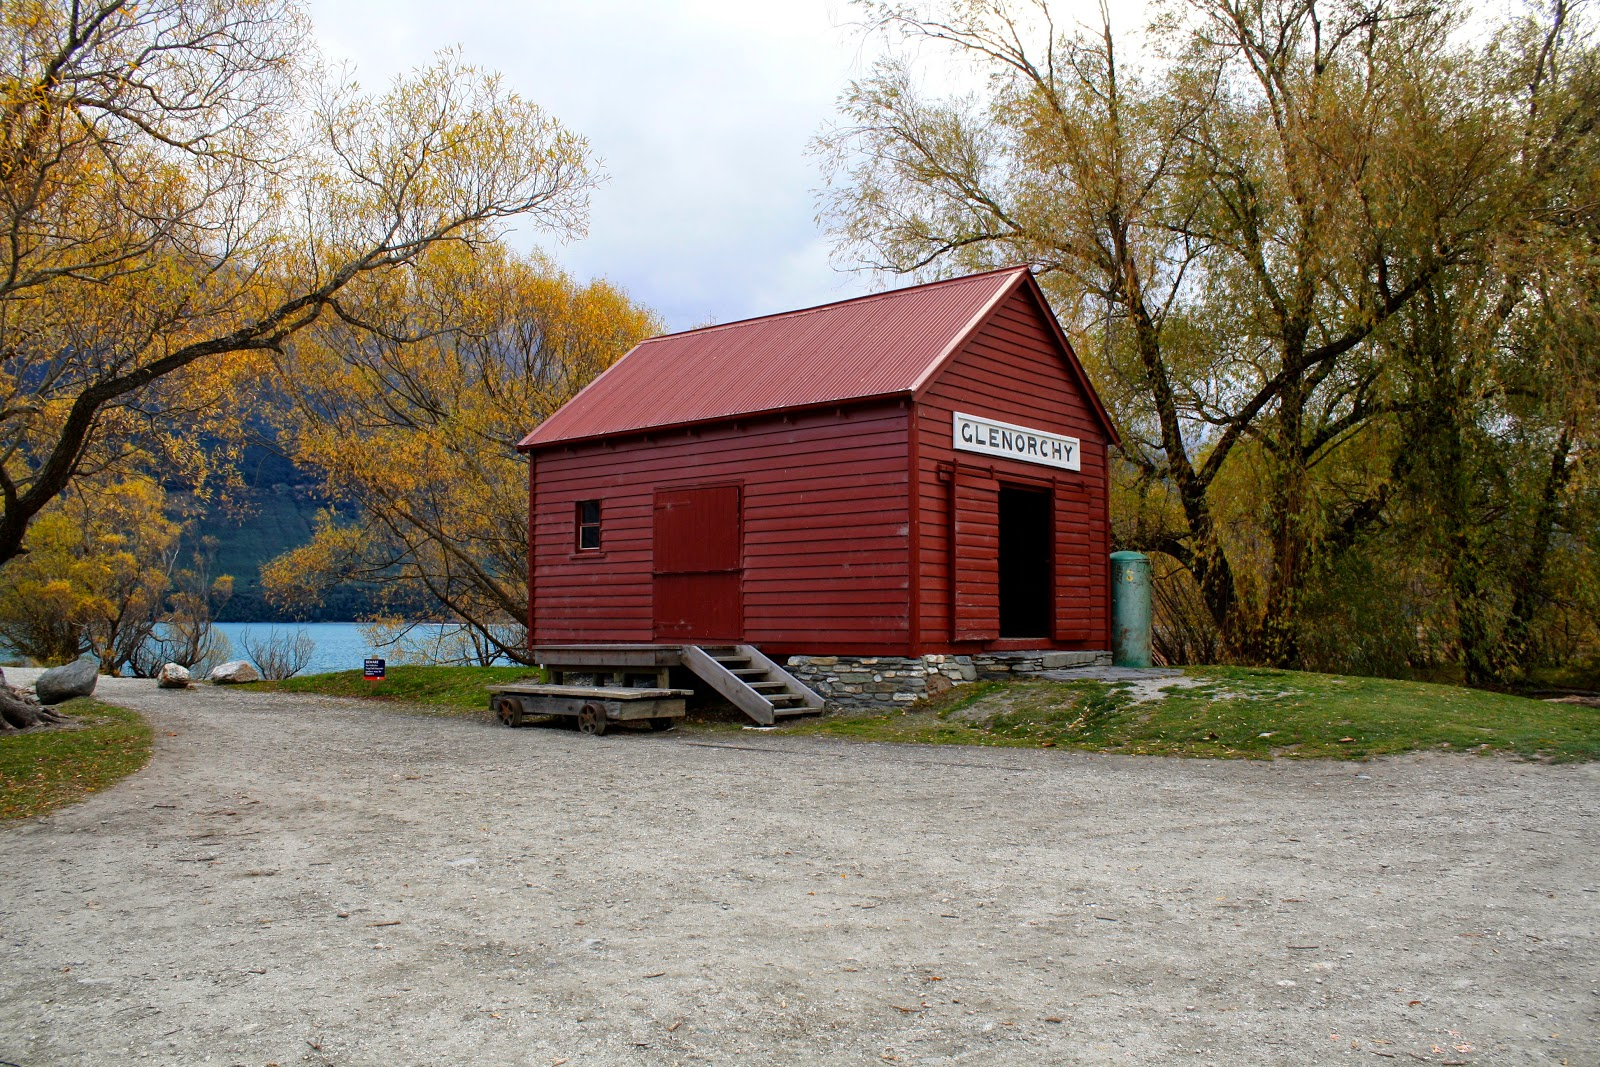 The boat shed at Glenorchy.